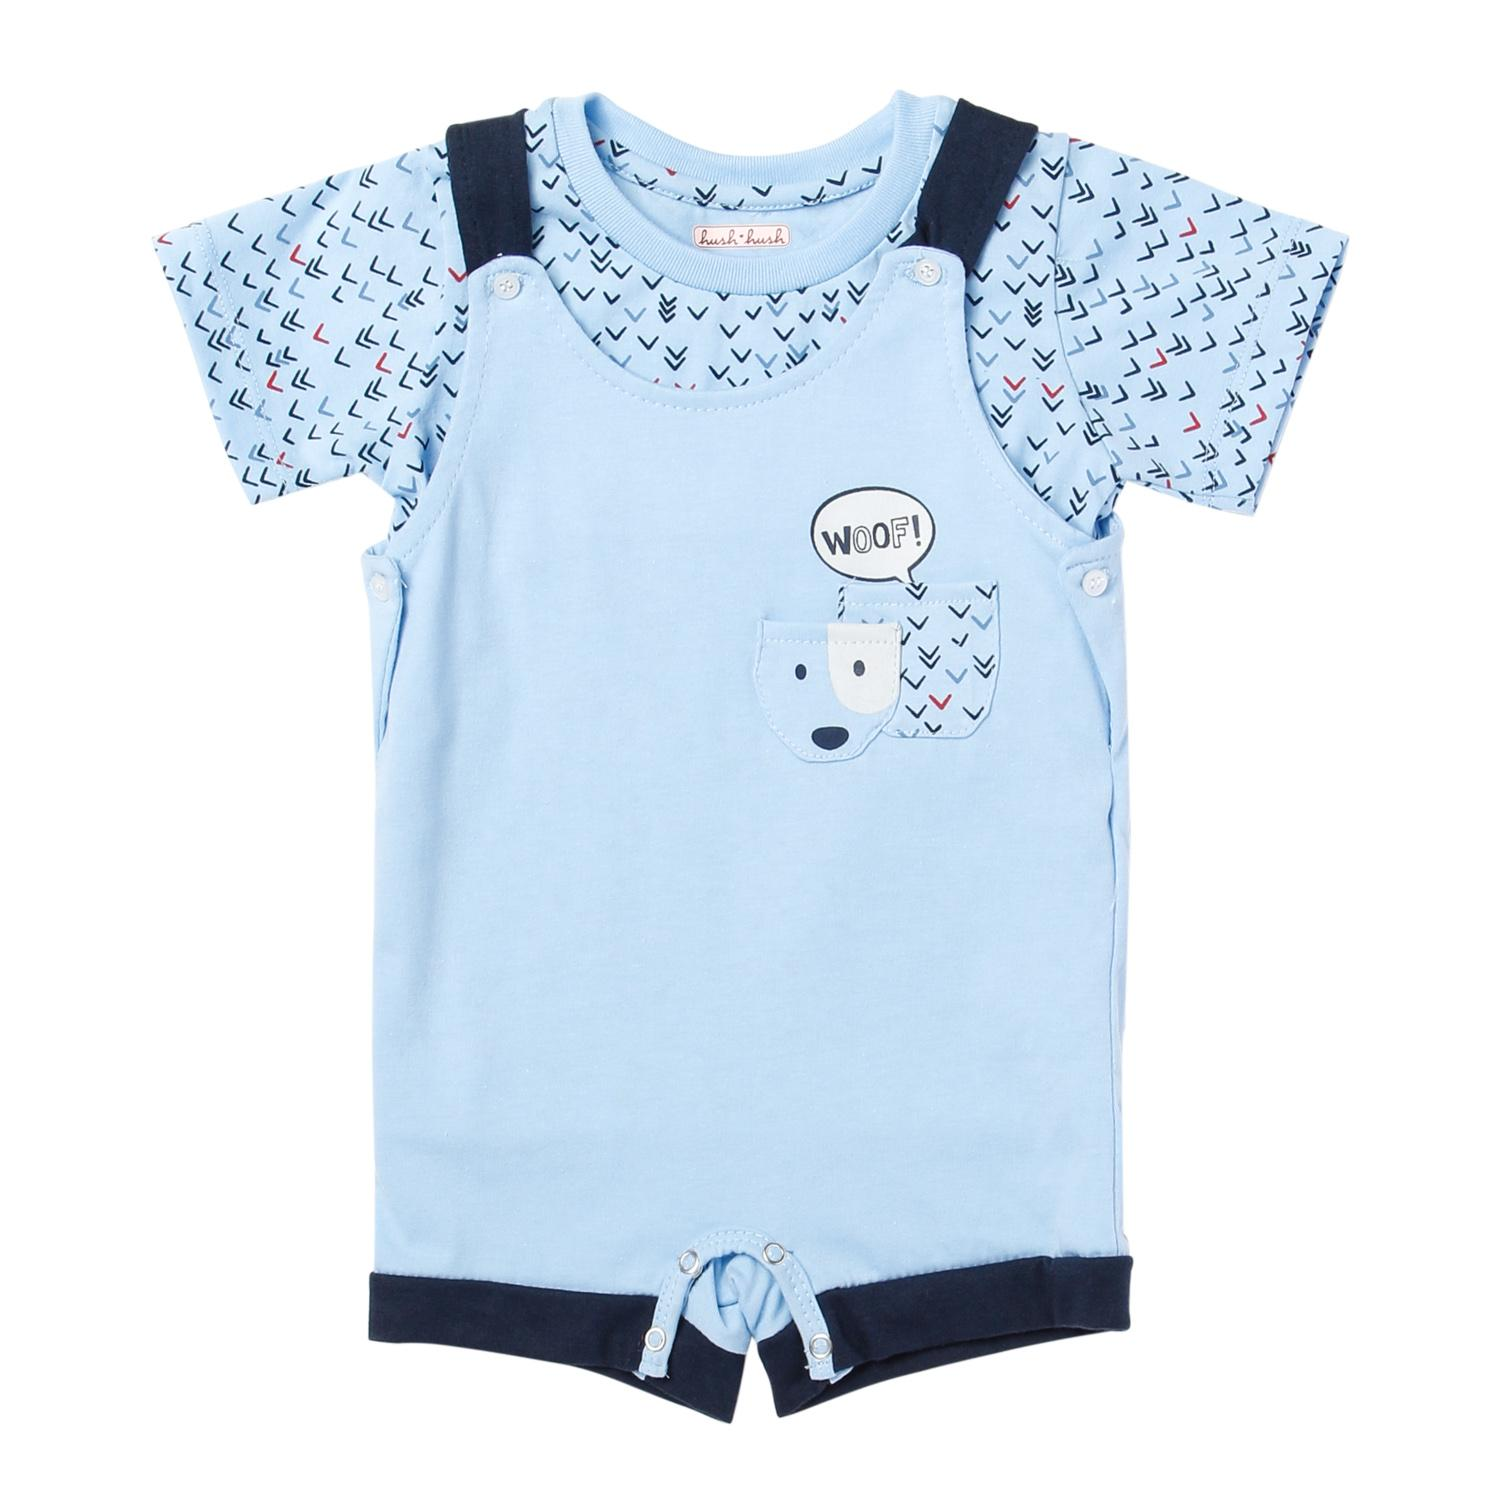 88008a4a97be Boys Body Suits for sale - Suits for Baby Boys online brands